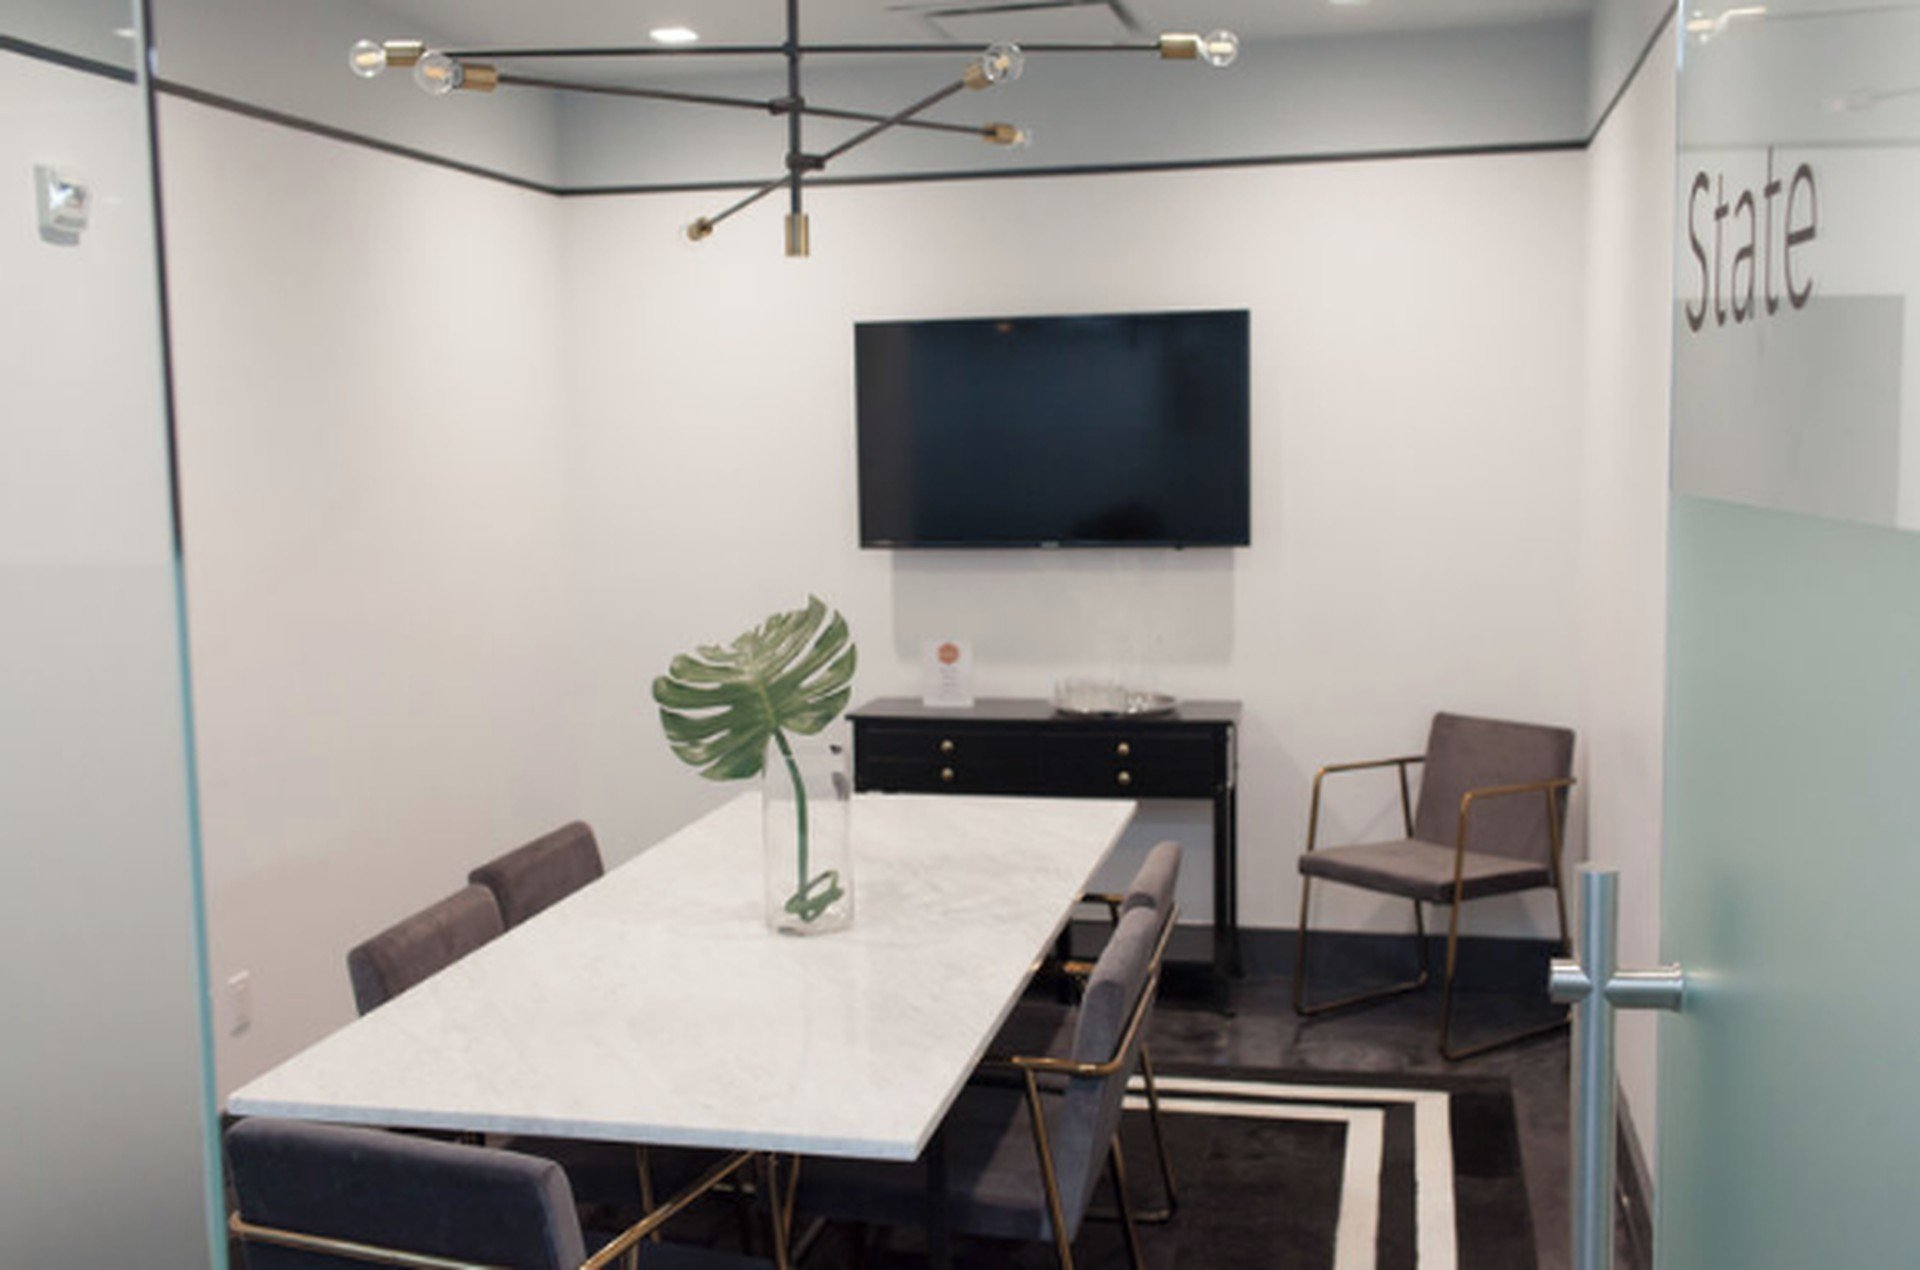 NYC conference rooms Meetingraum Bond Collective - State image 0